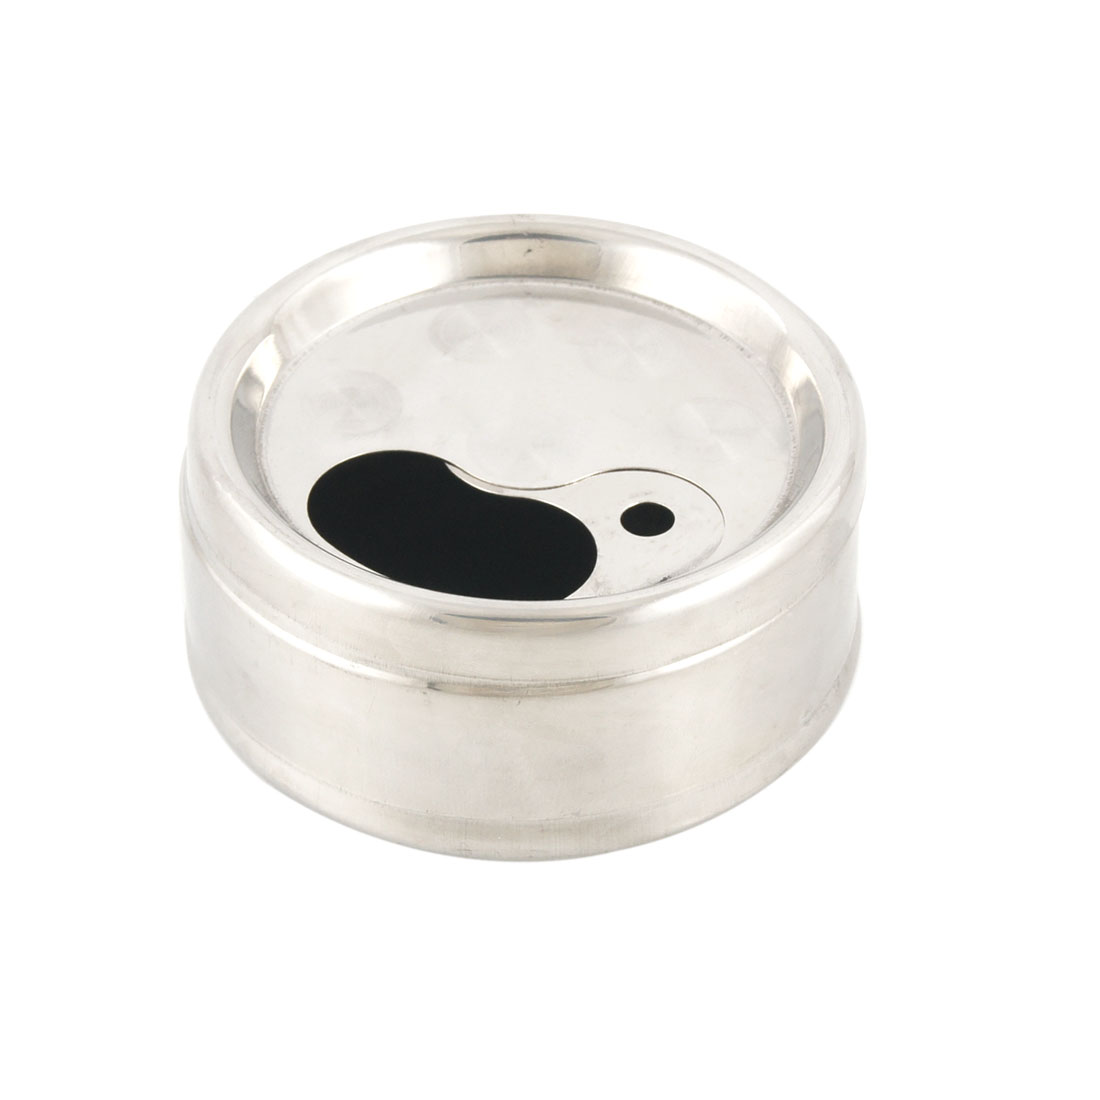 Silver Tone Stainless Steel Rotating Lid Cigarette Smoking Ashtray